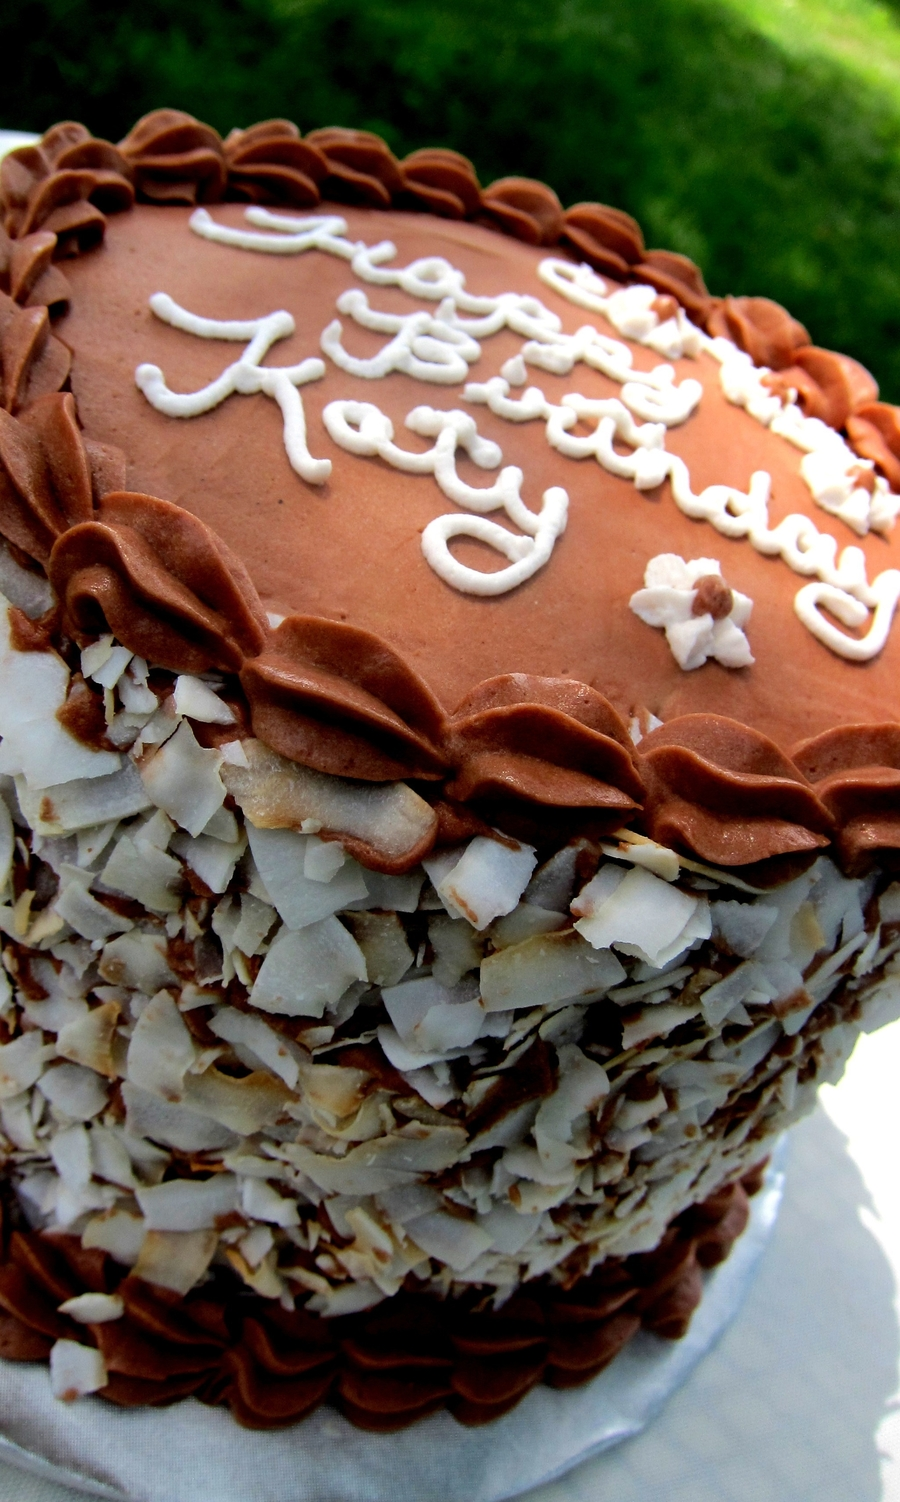 Gluten Free Diary Free Chocolate Coconut Cake on Cake Central